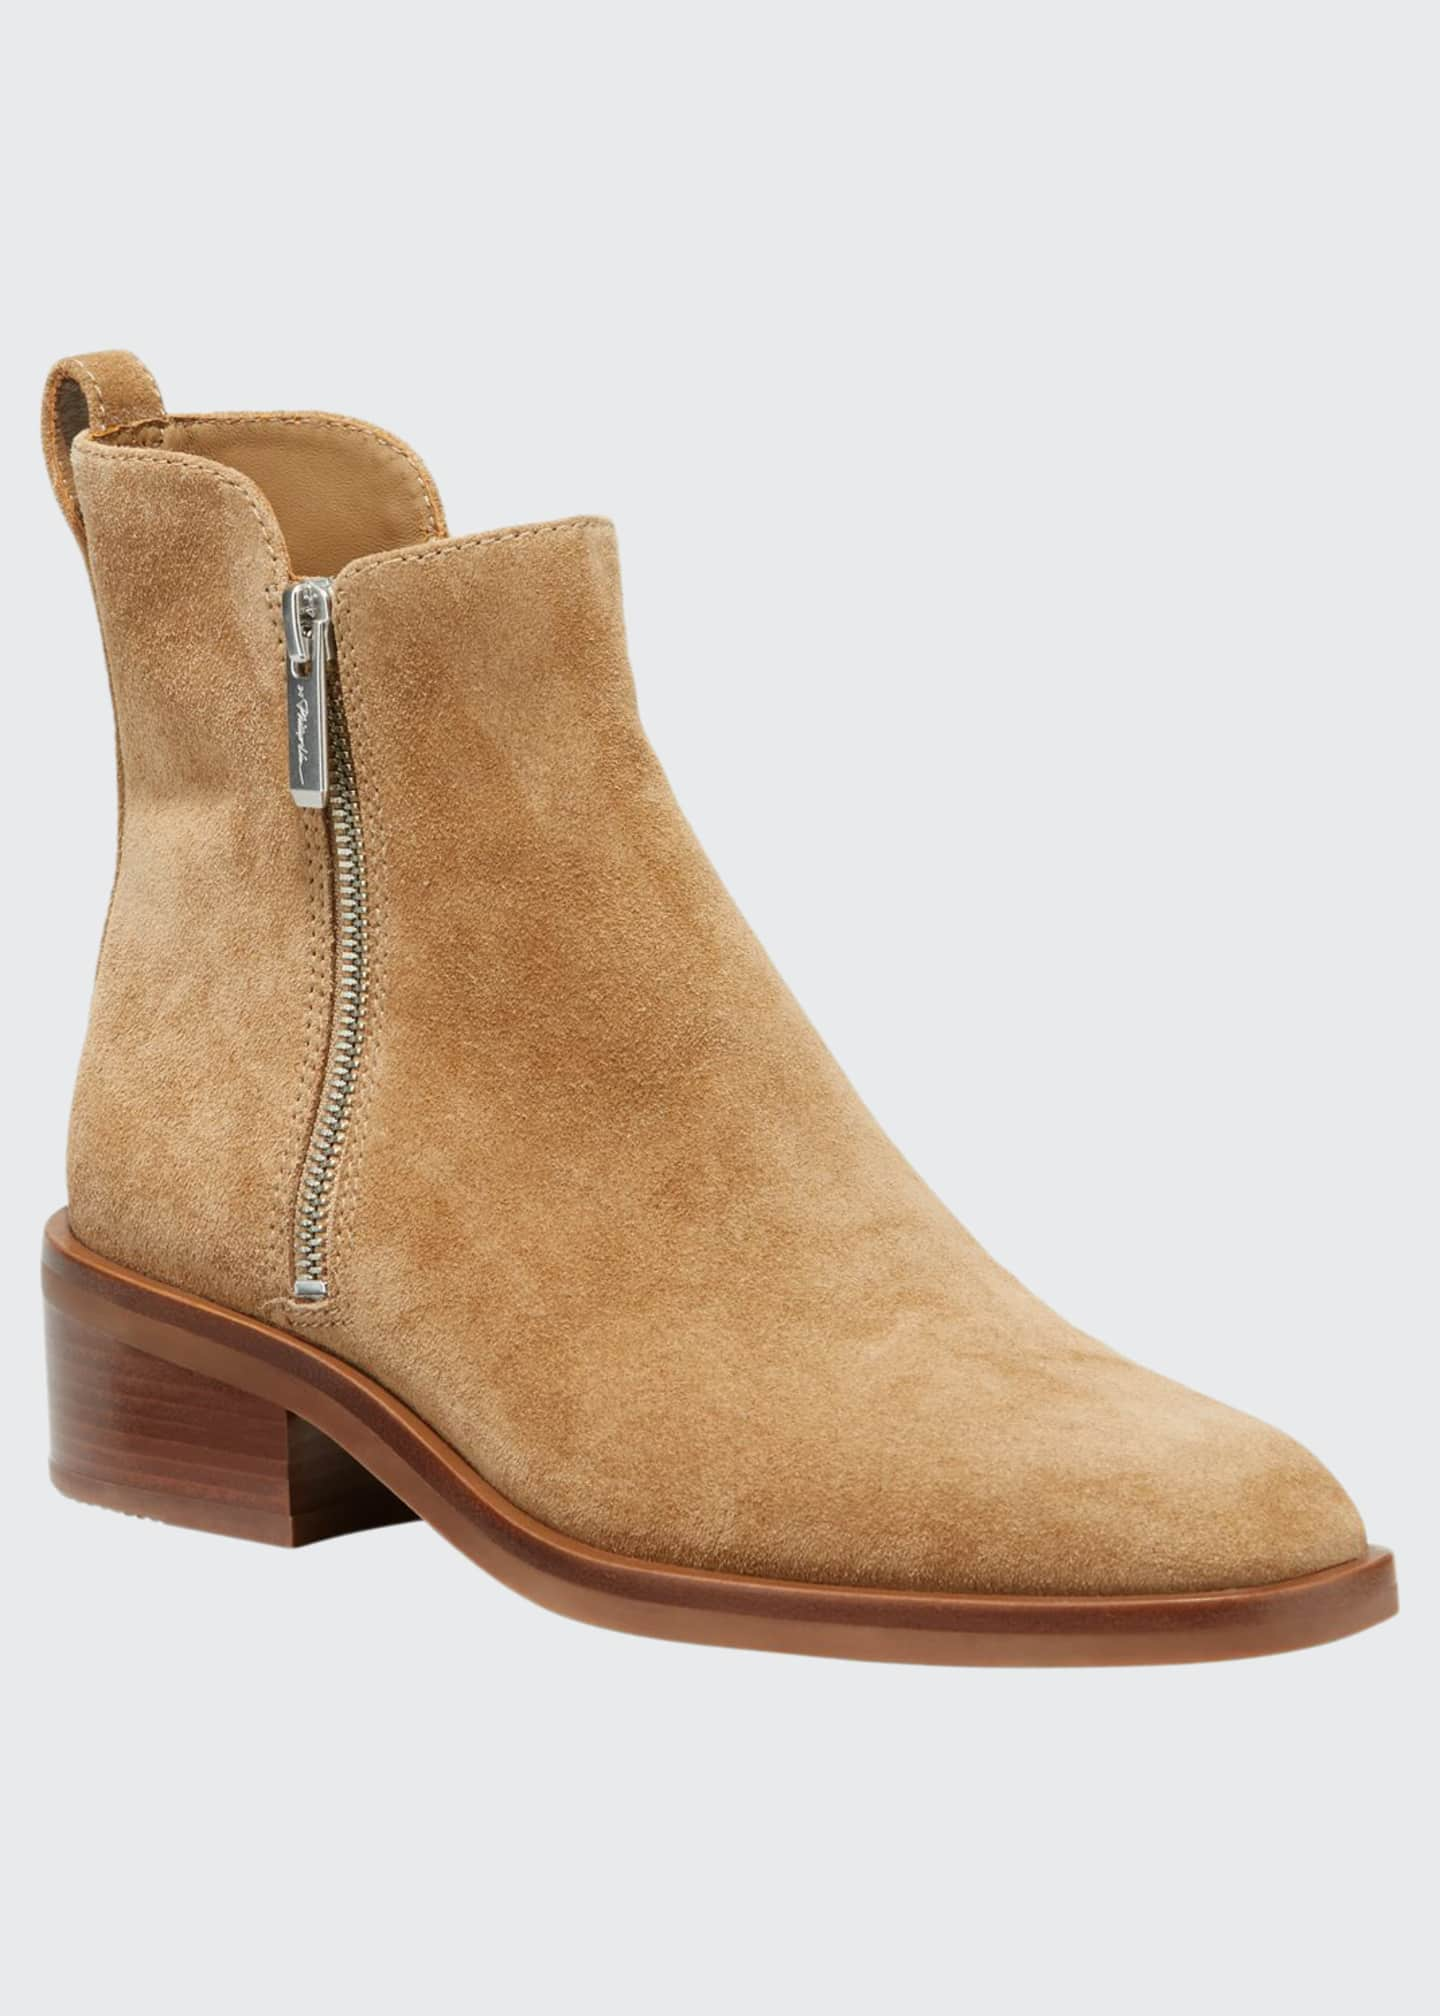 3.1 Phillip Lim Alexa Suede Double-Zip Ankle Booties